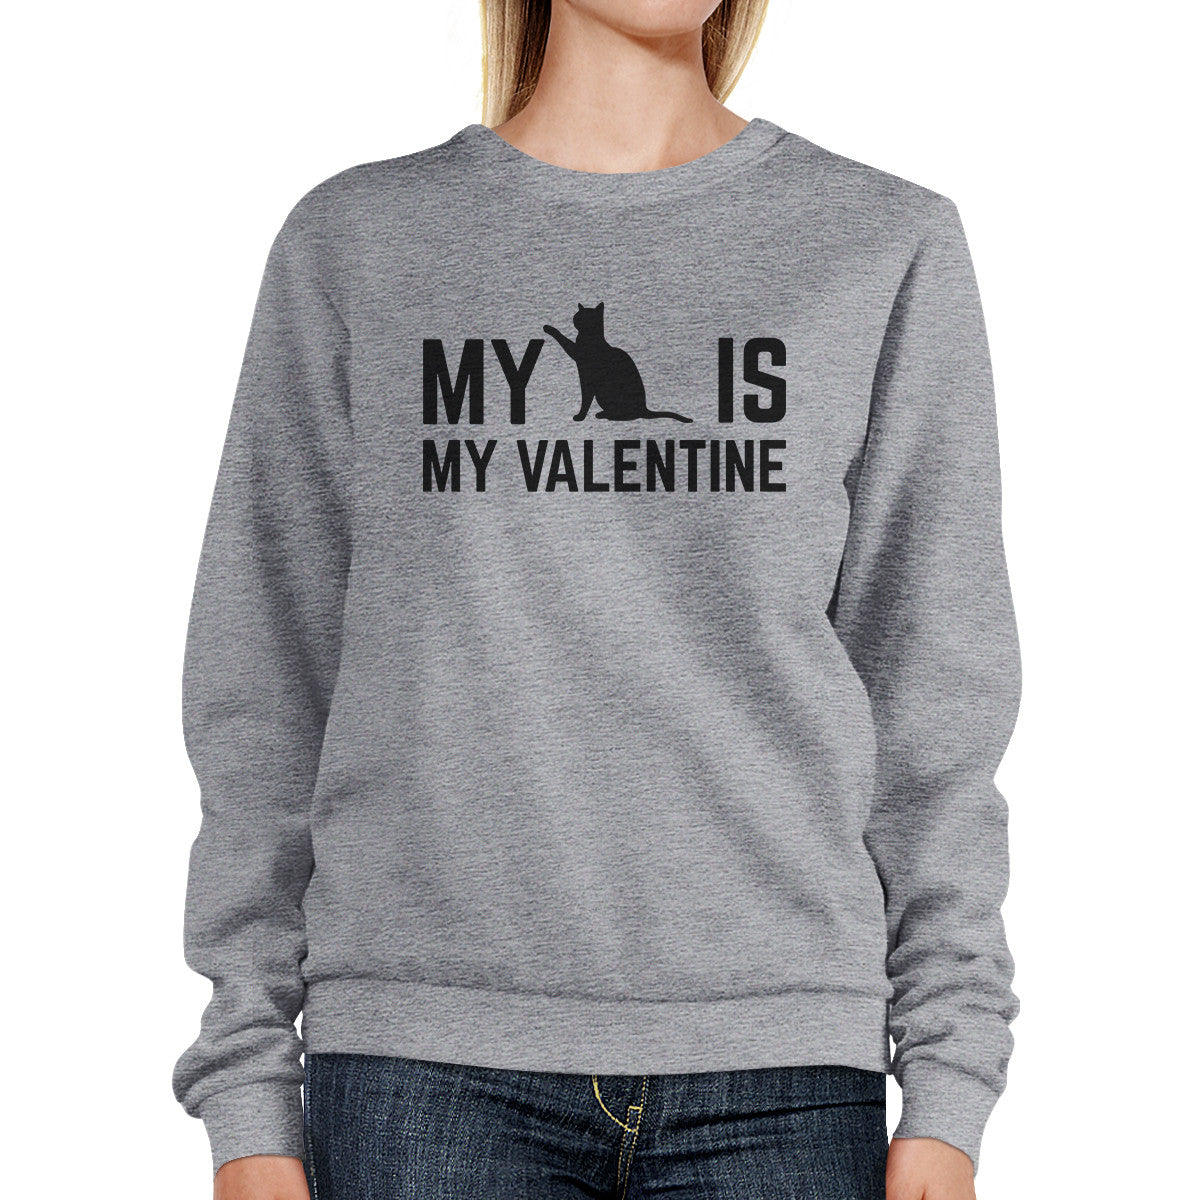 My Cat is My Valentine Unisex Grey Graphic Sweatshirt for Cat Lover